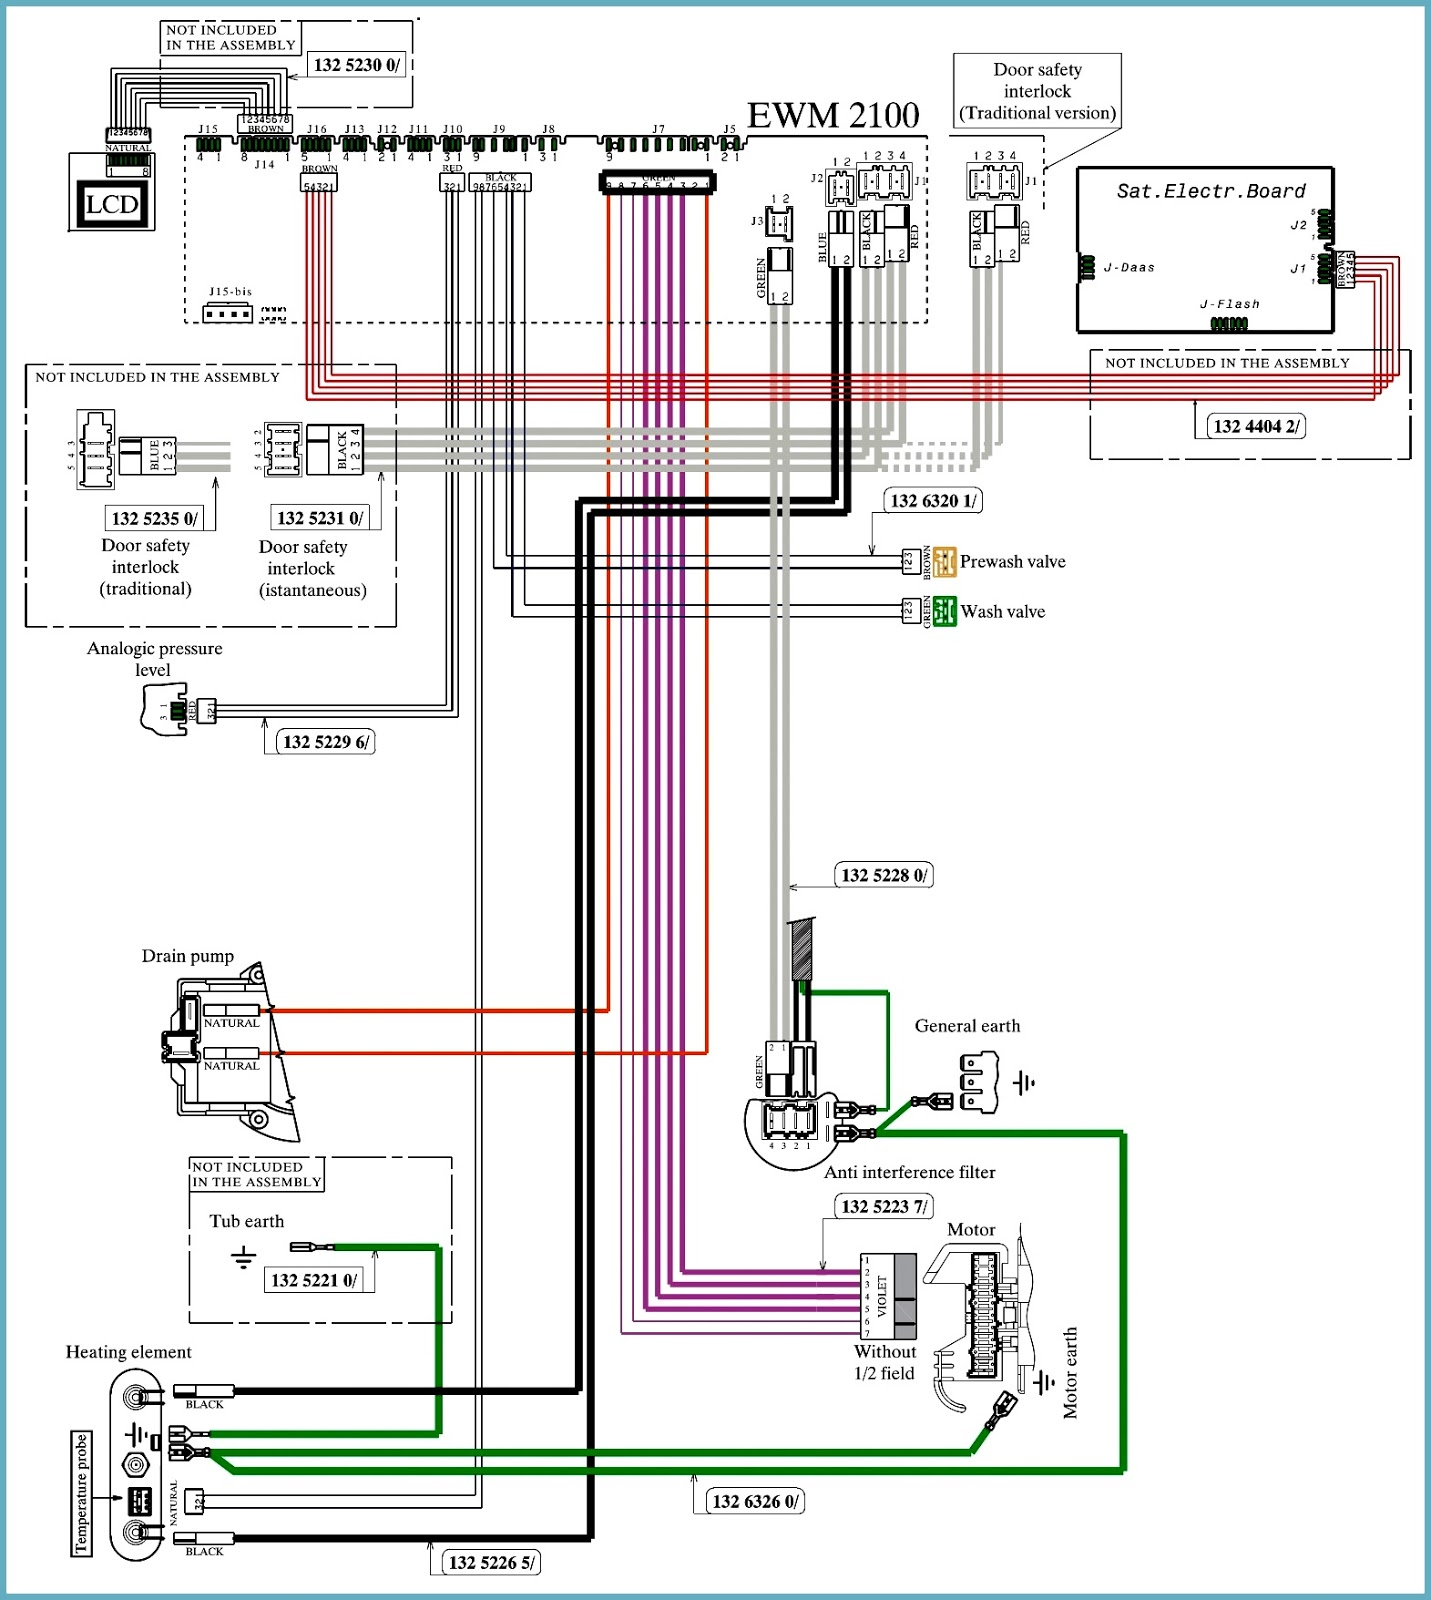 wiring%2Bdiagram Washing Machine Wiring Diagram And Schematics on washing machine motor wiring diagram, washing machine function table, washing machine function chart,